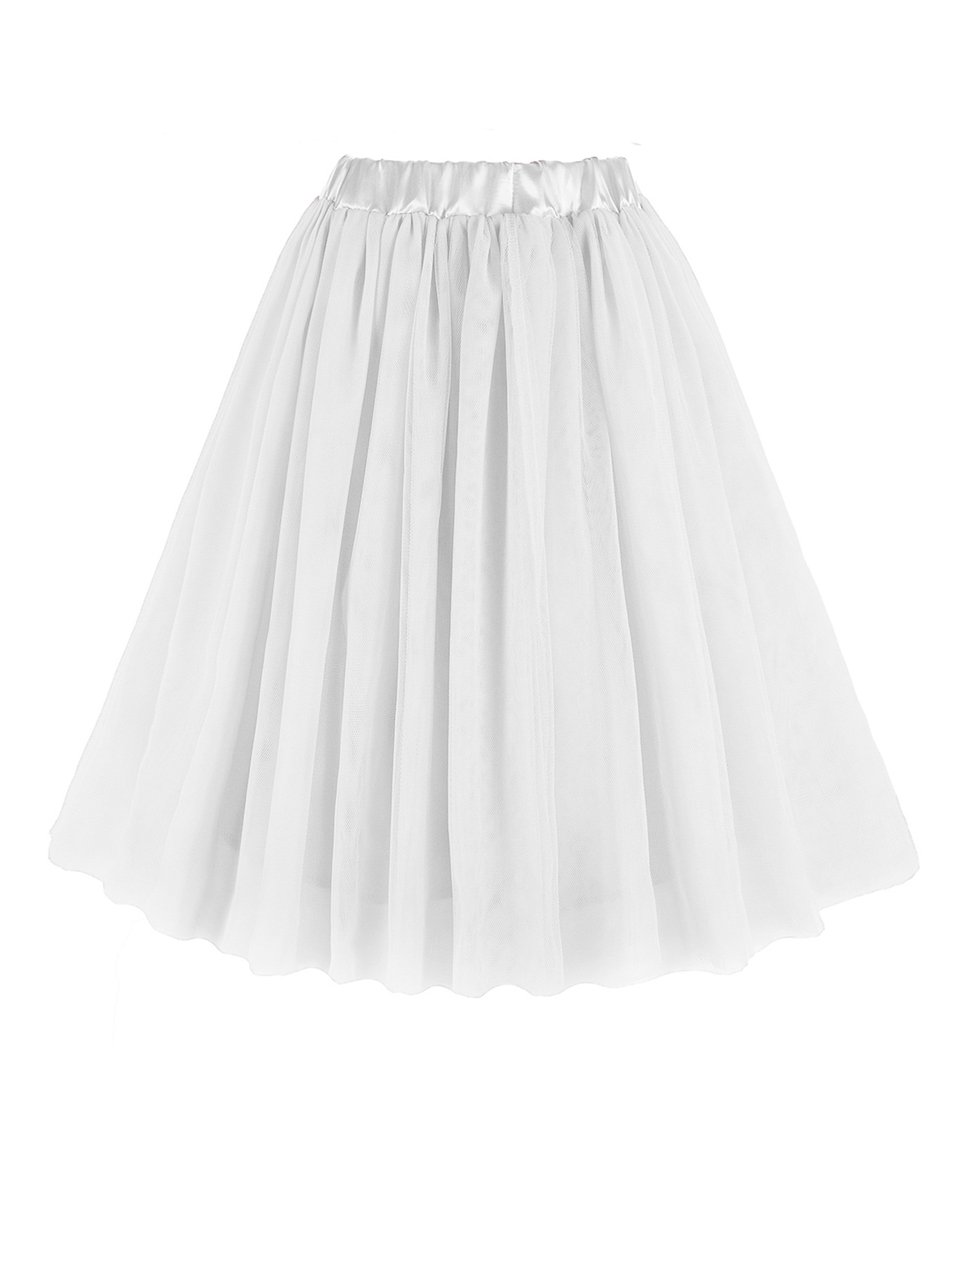 v28 Women Girls Junior Pleated Tulle Tutu Ballet Midi Elastic Skater Dance Skirt